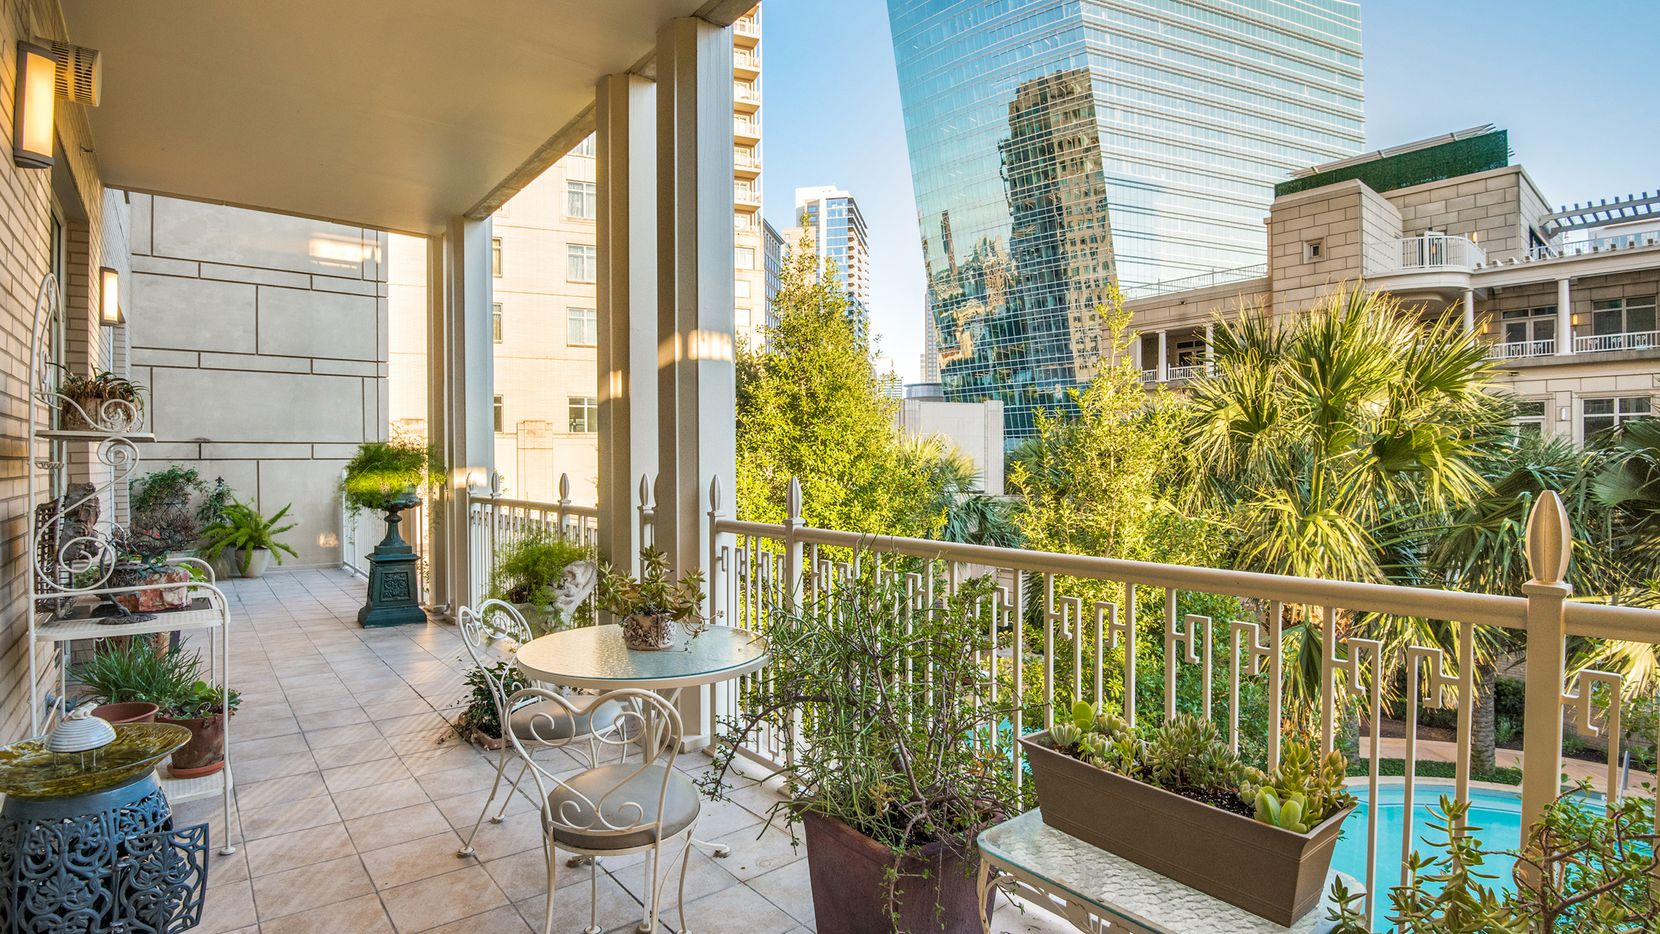 The home at 2555 N. Pearl St., unit 202 at the Ritz-Carlton Residences of Dallas offers views of the pool.